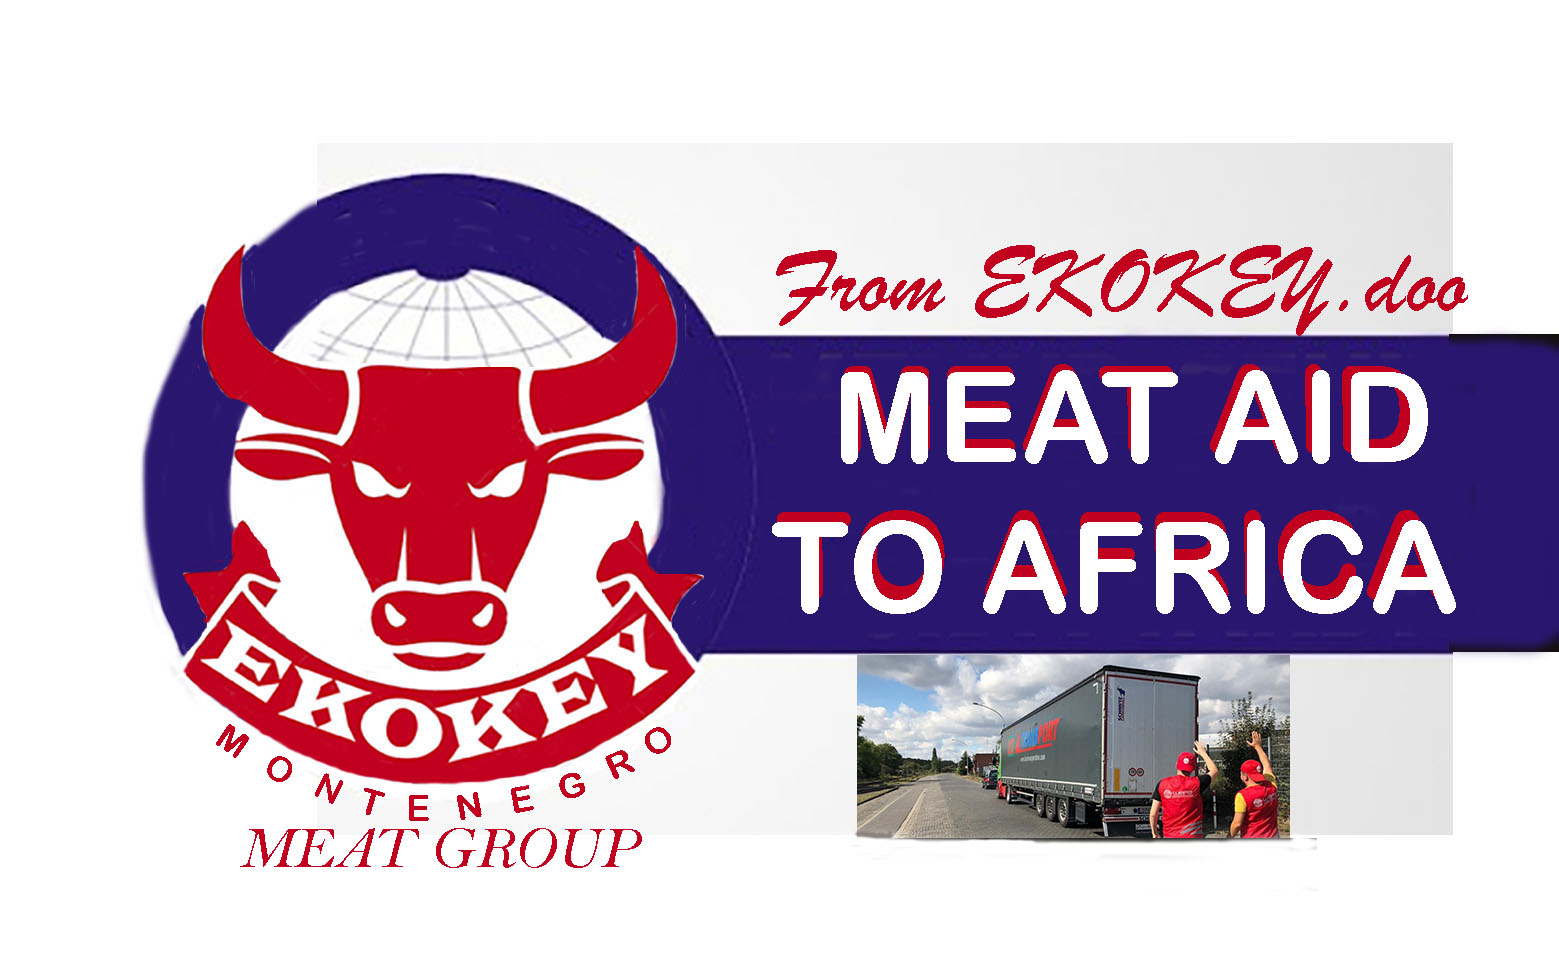 AFRICA MEAT AID